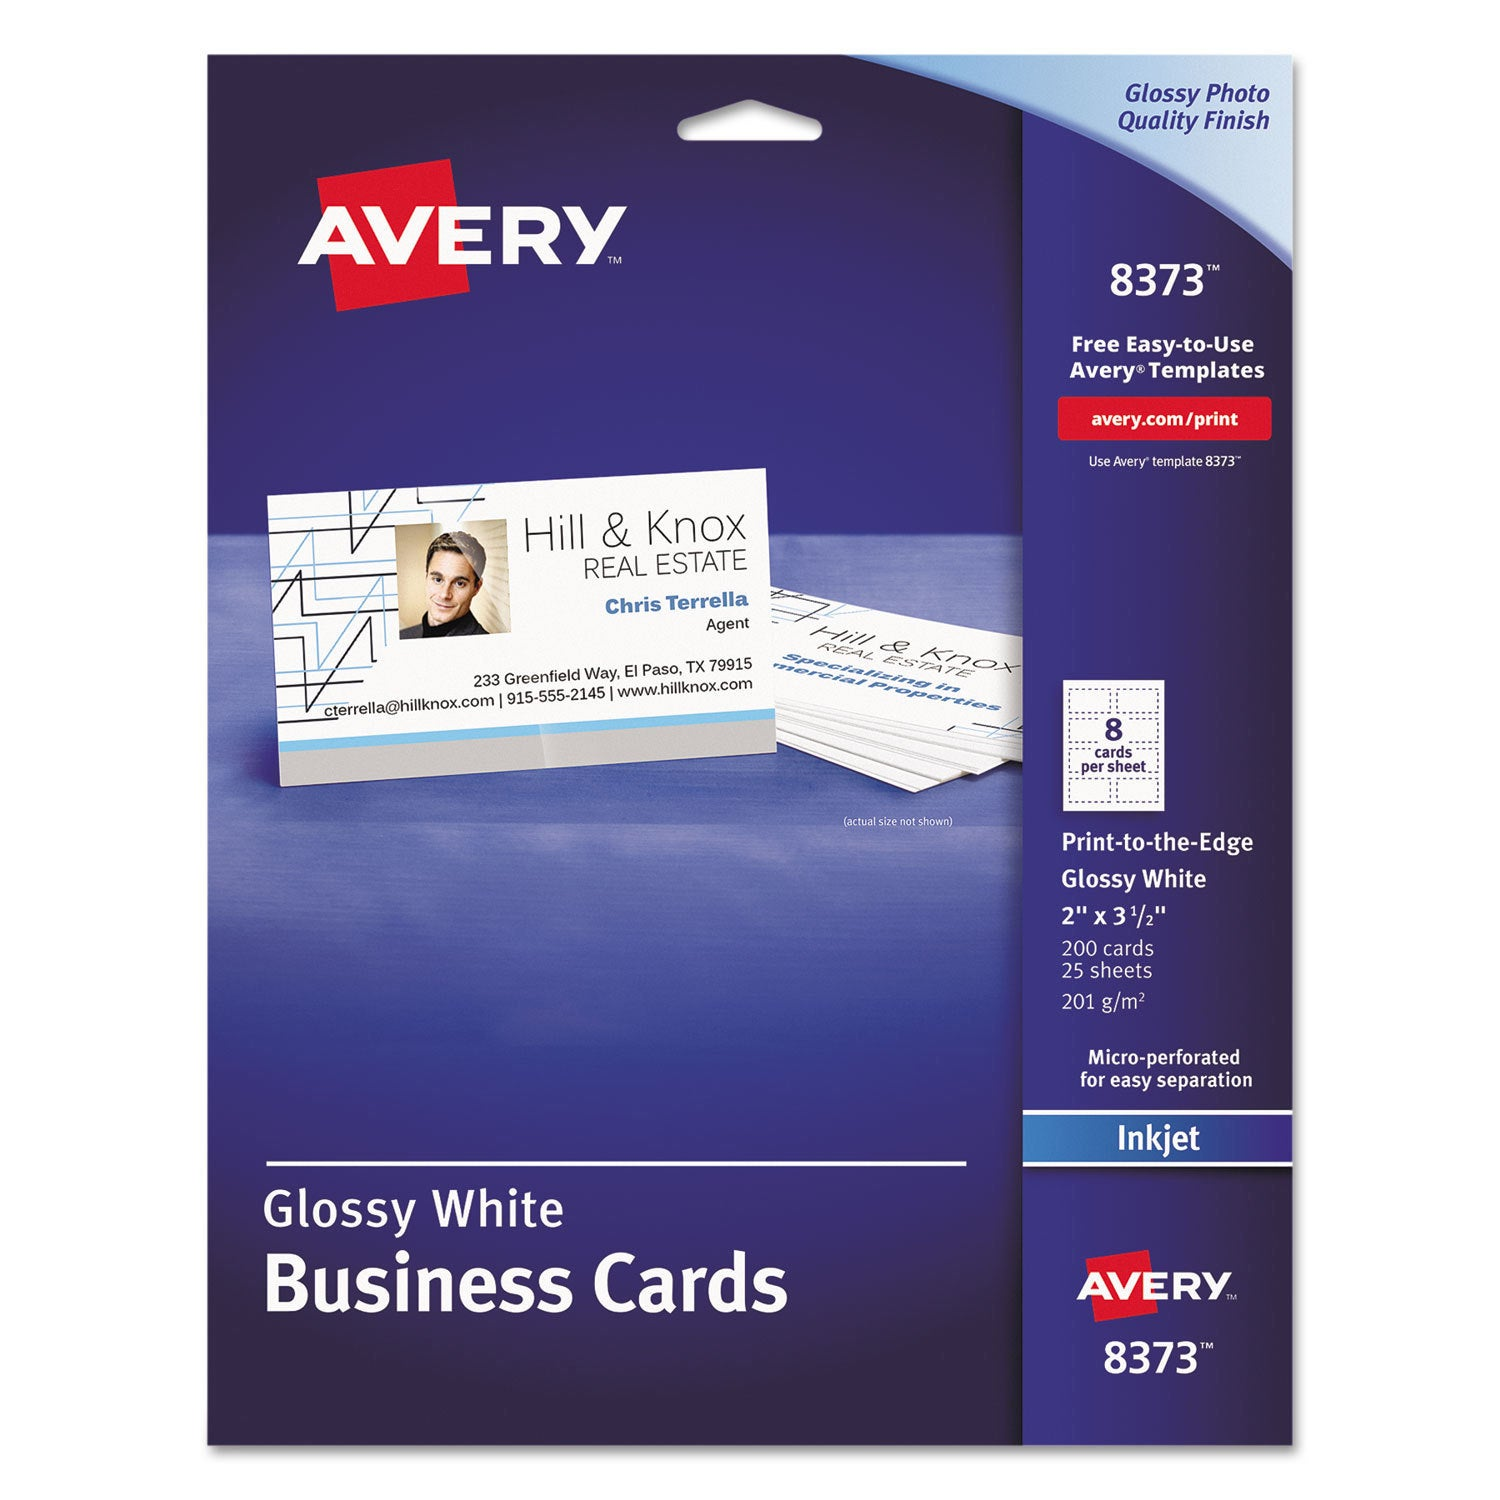 Shop Avery Print To The Edge Microperf Business Cards Inkjet 2x3 12